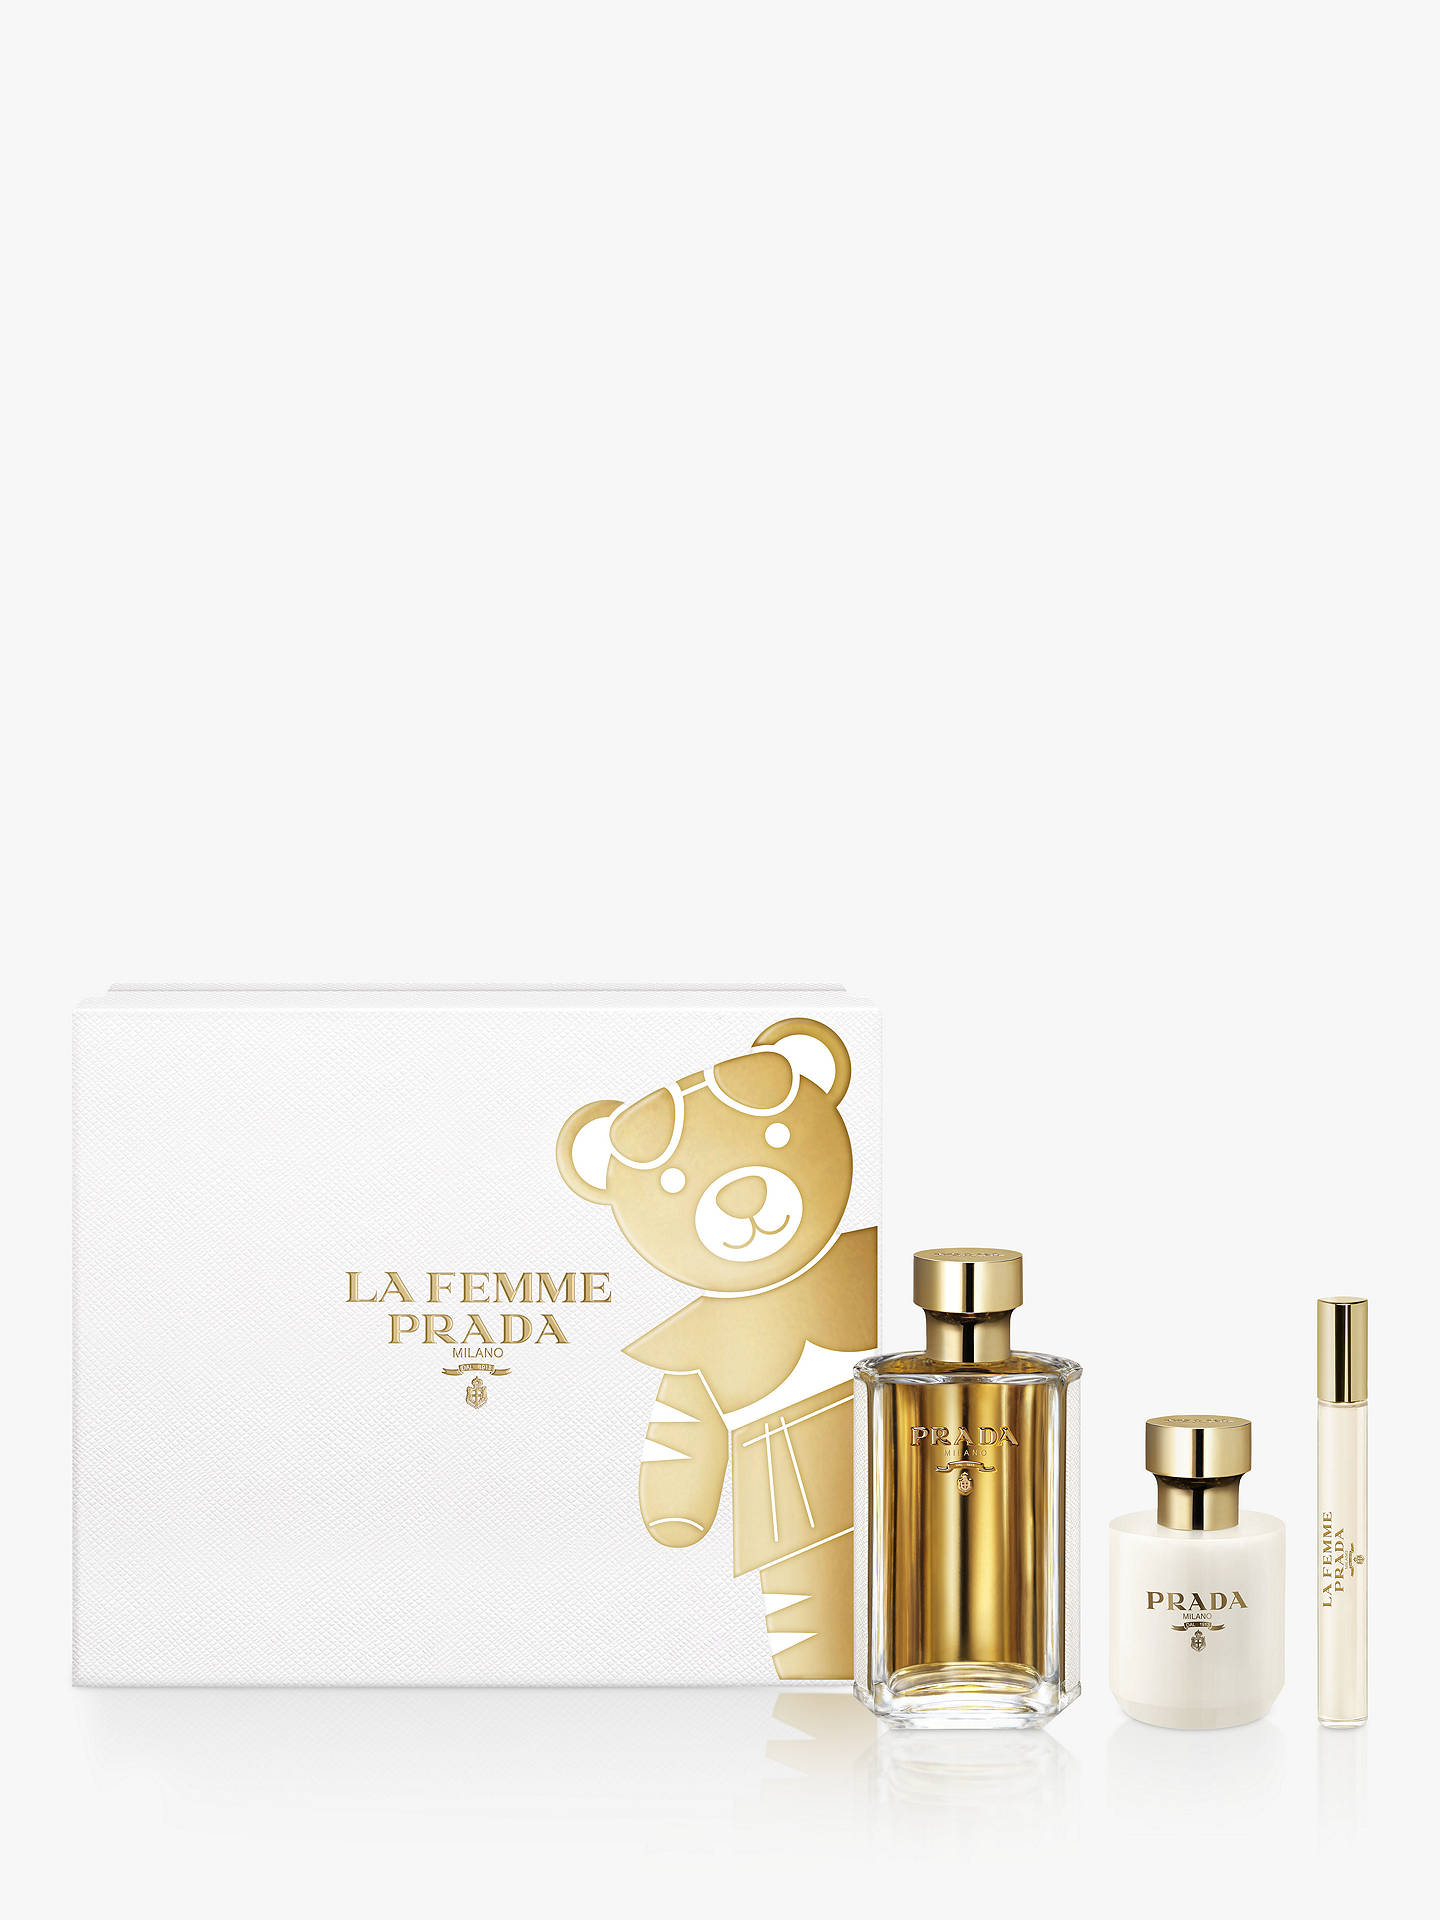 BuyPrada La Femme 100ml Eau de Parfum Fragrance Gift Set Online at johnlewis.com